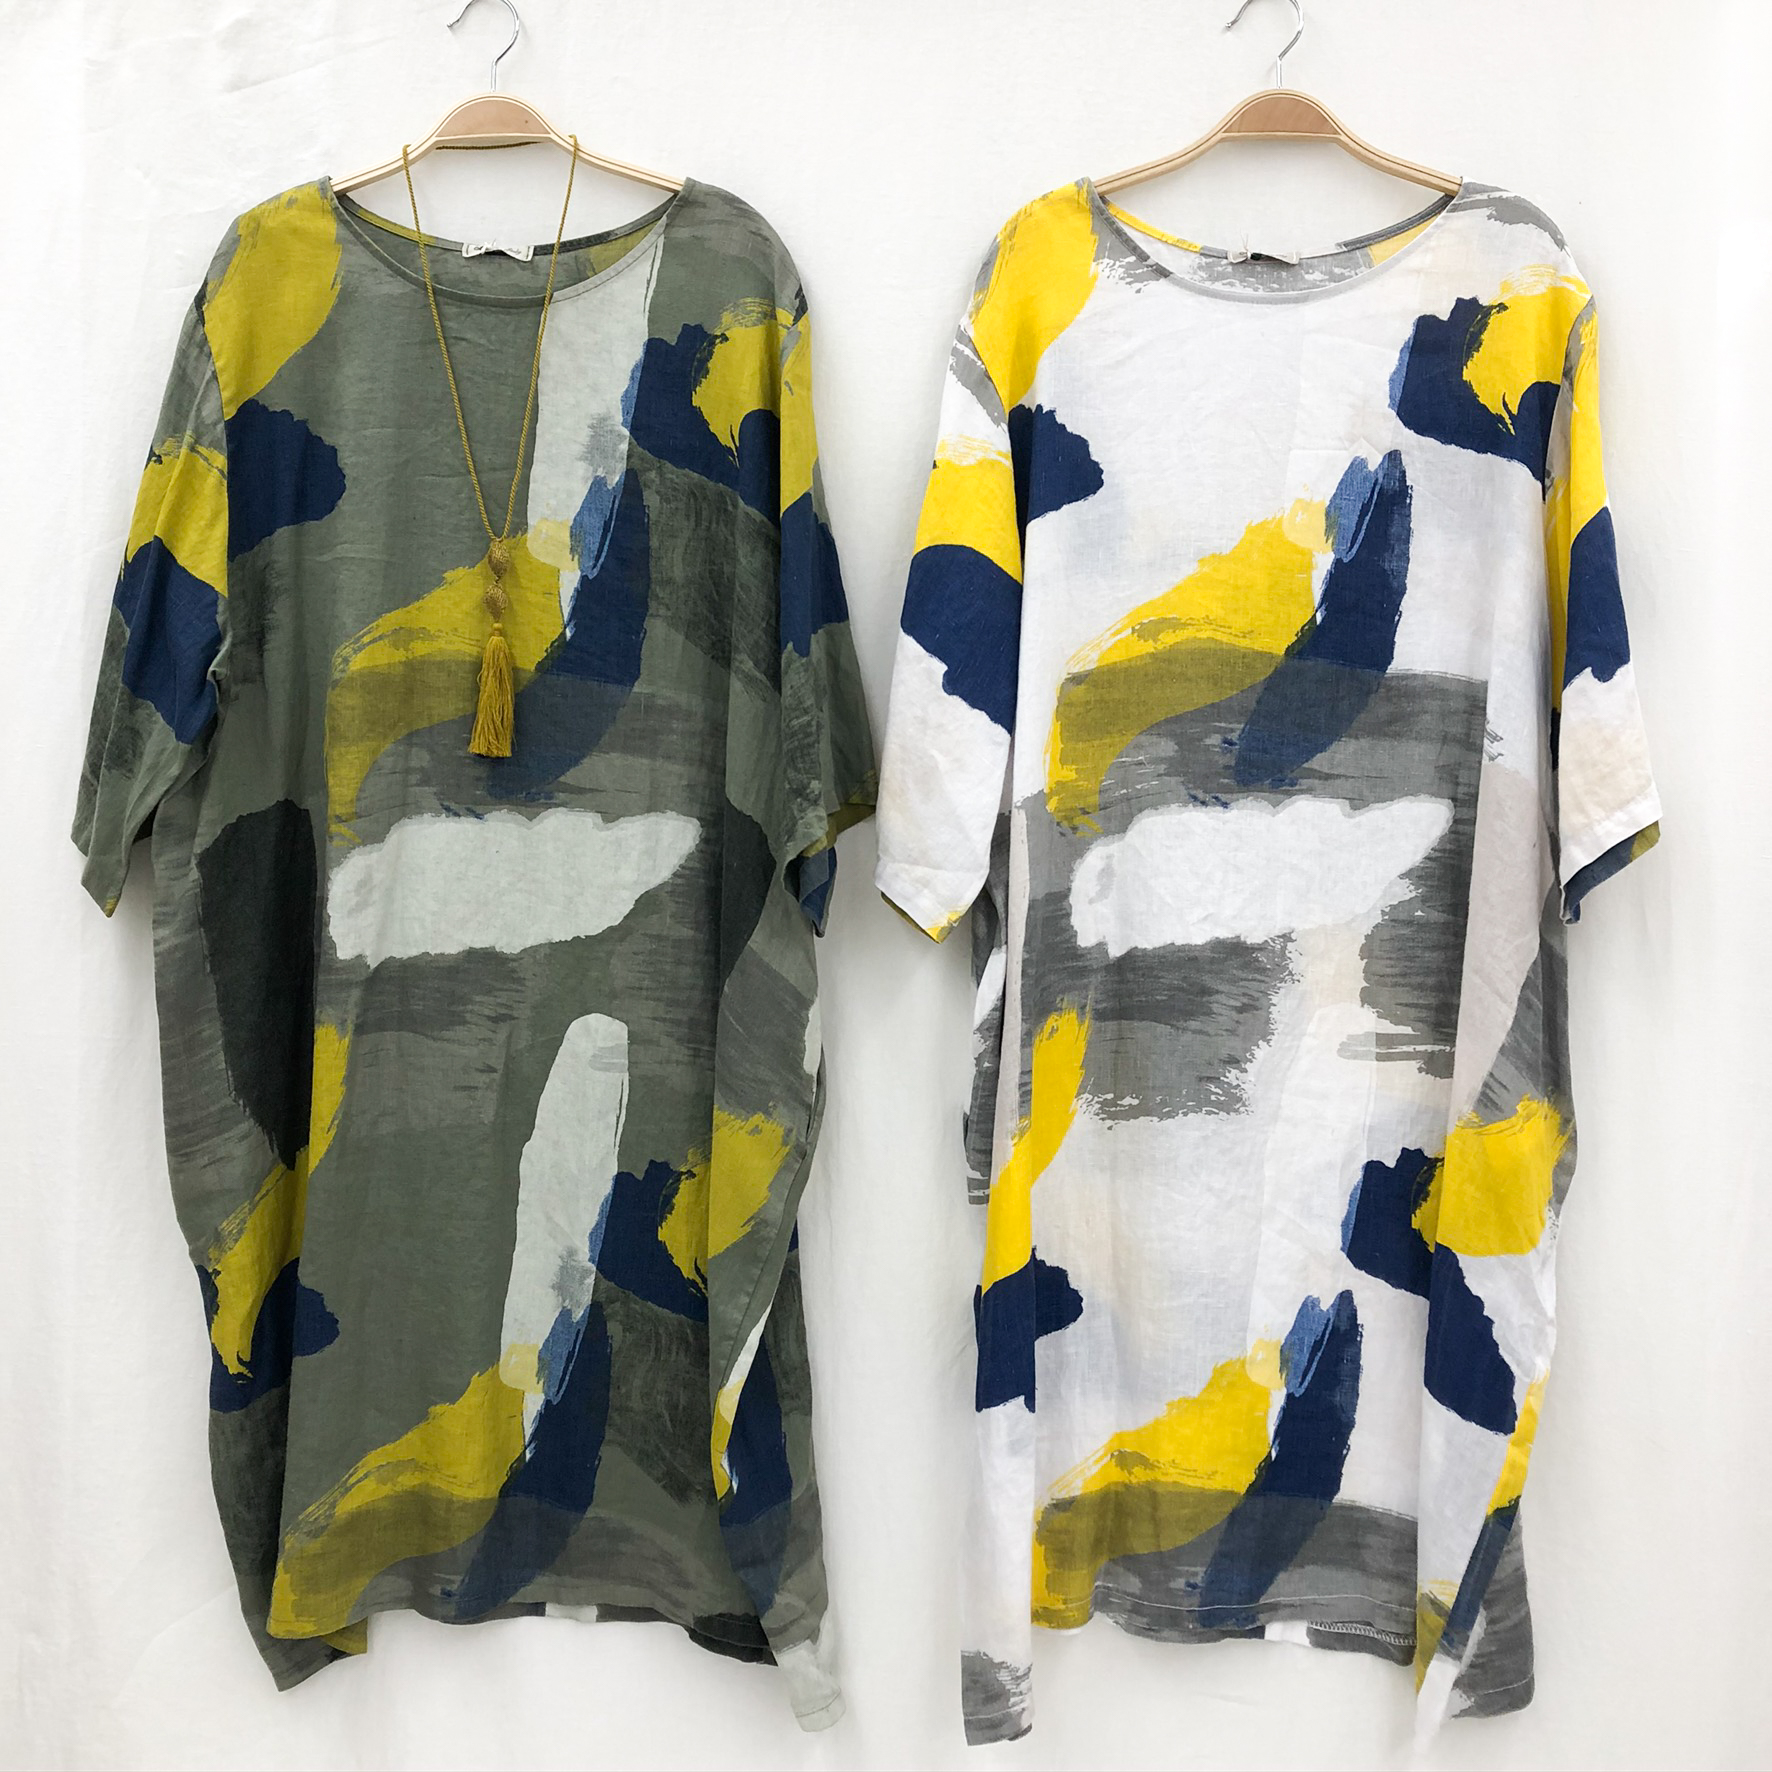 Two Different Colors - Color Splash Dresses on Hangers